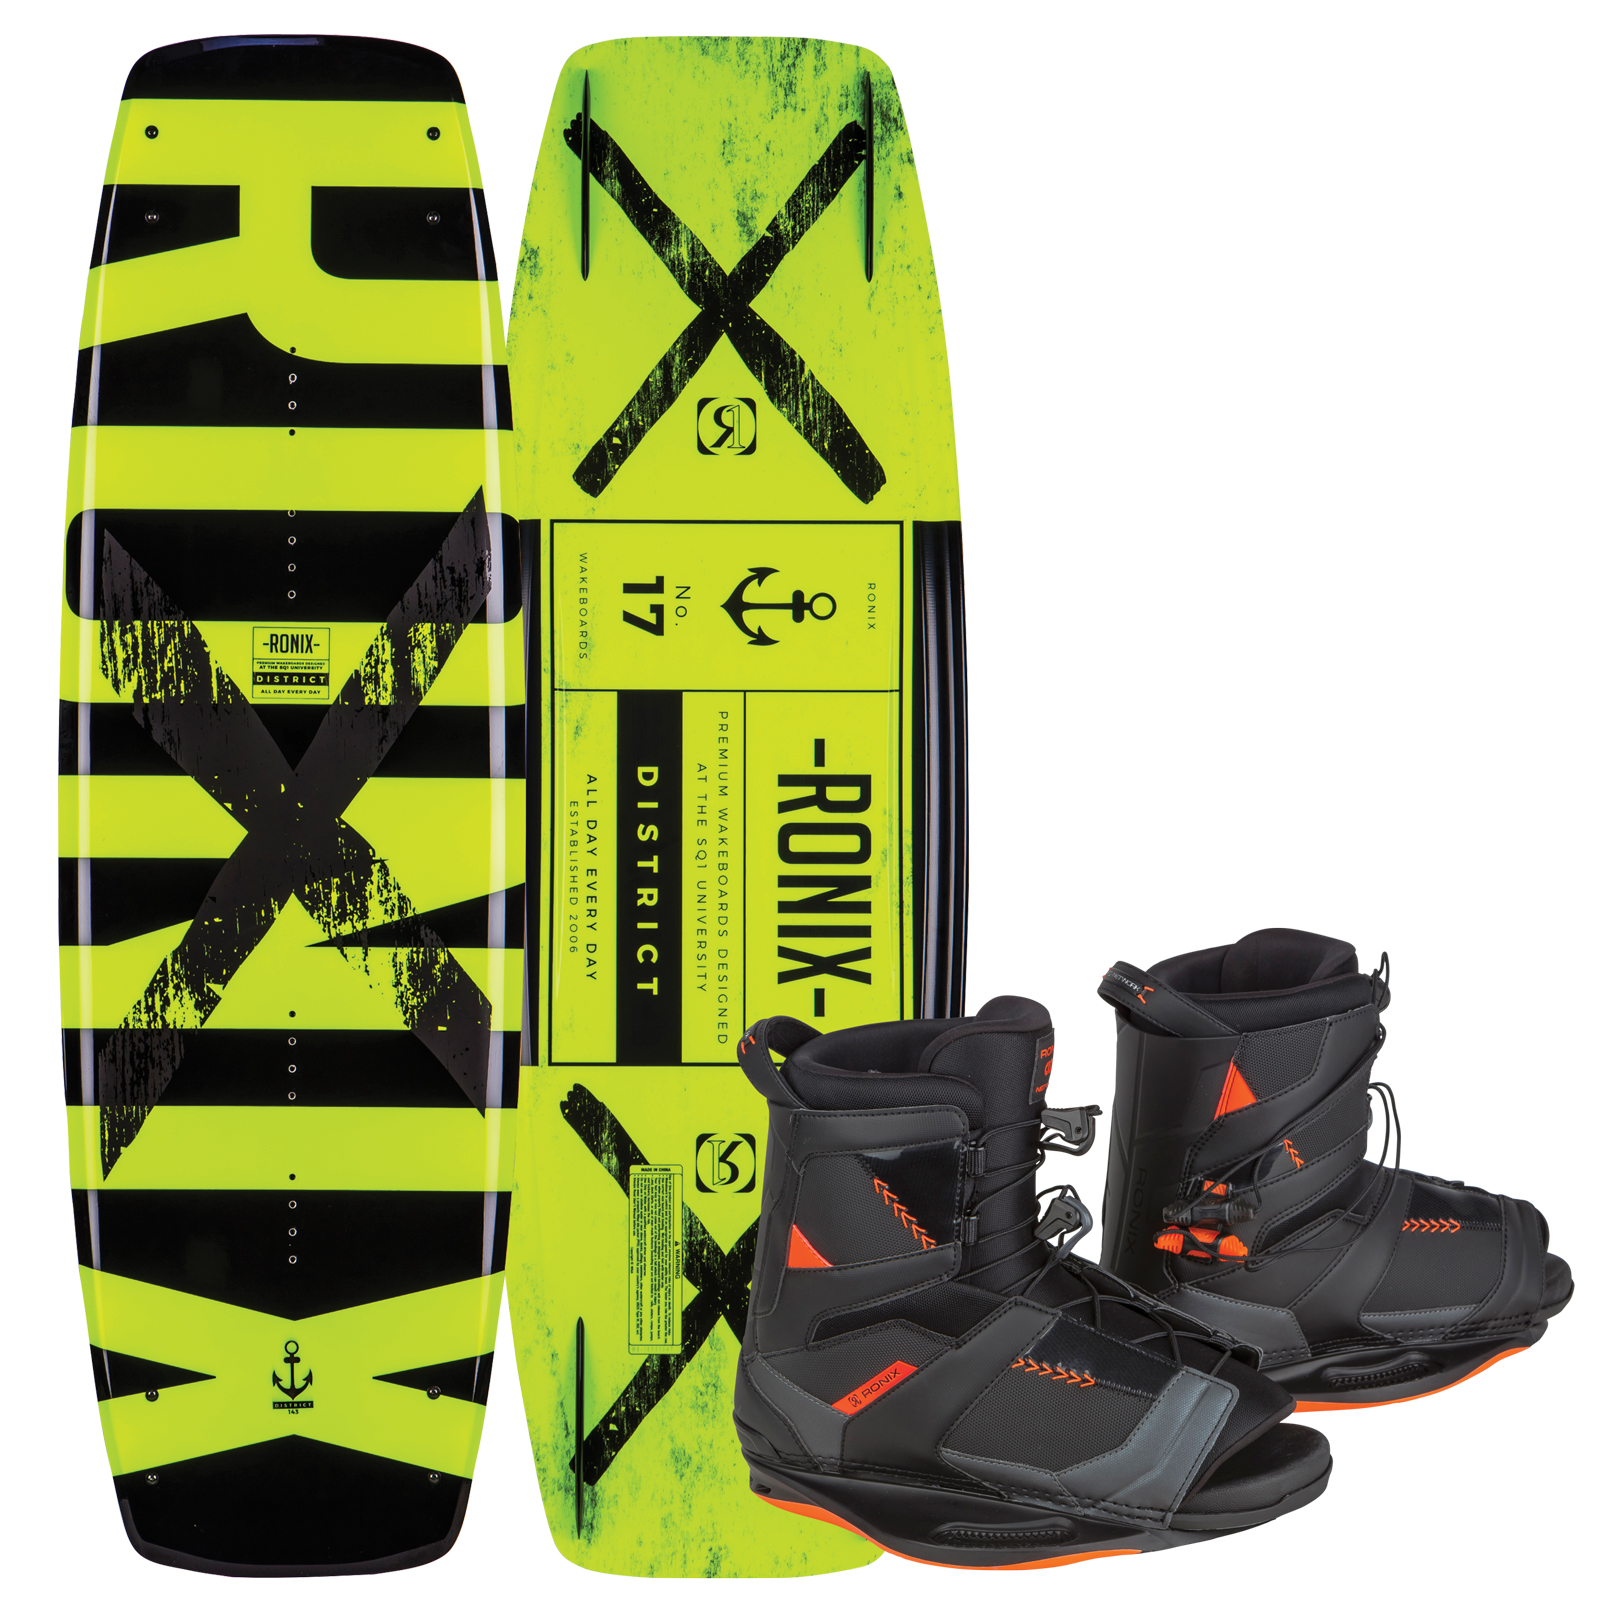 DISTRICT 129 W/ NETWORK PACKAGE RONIX 2017